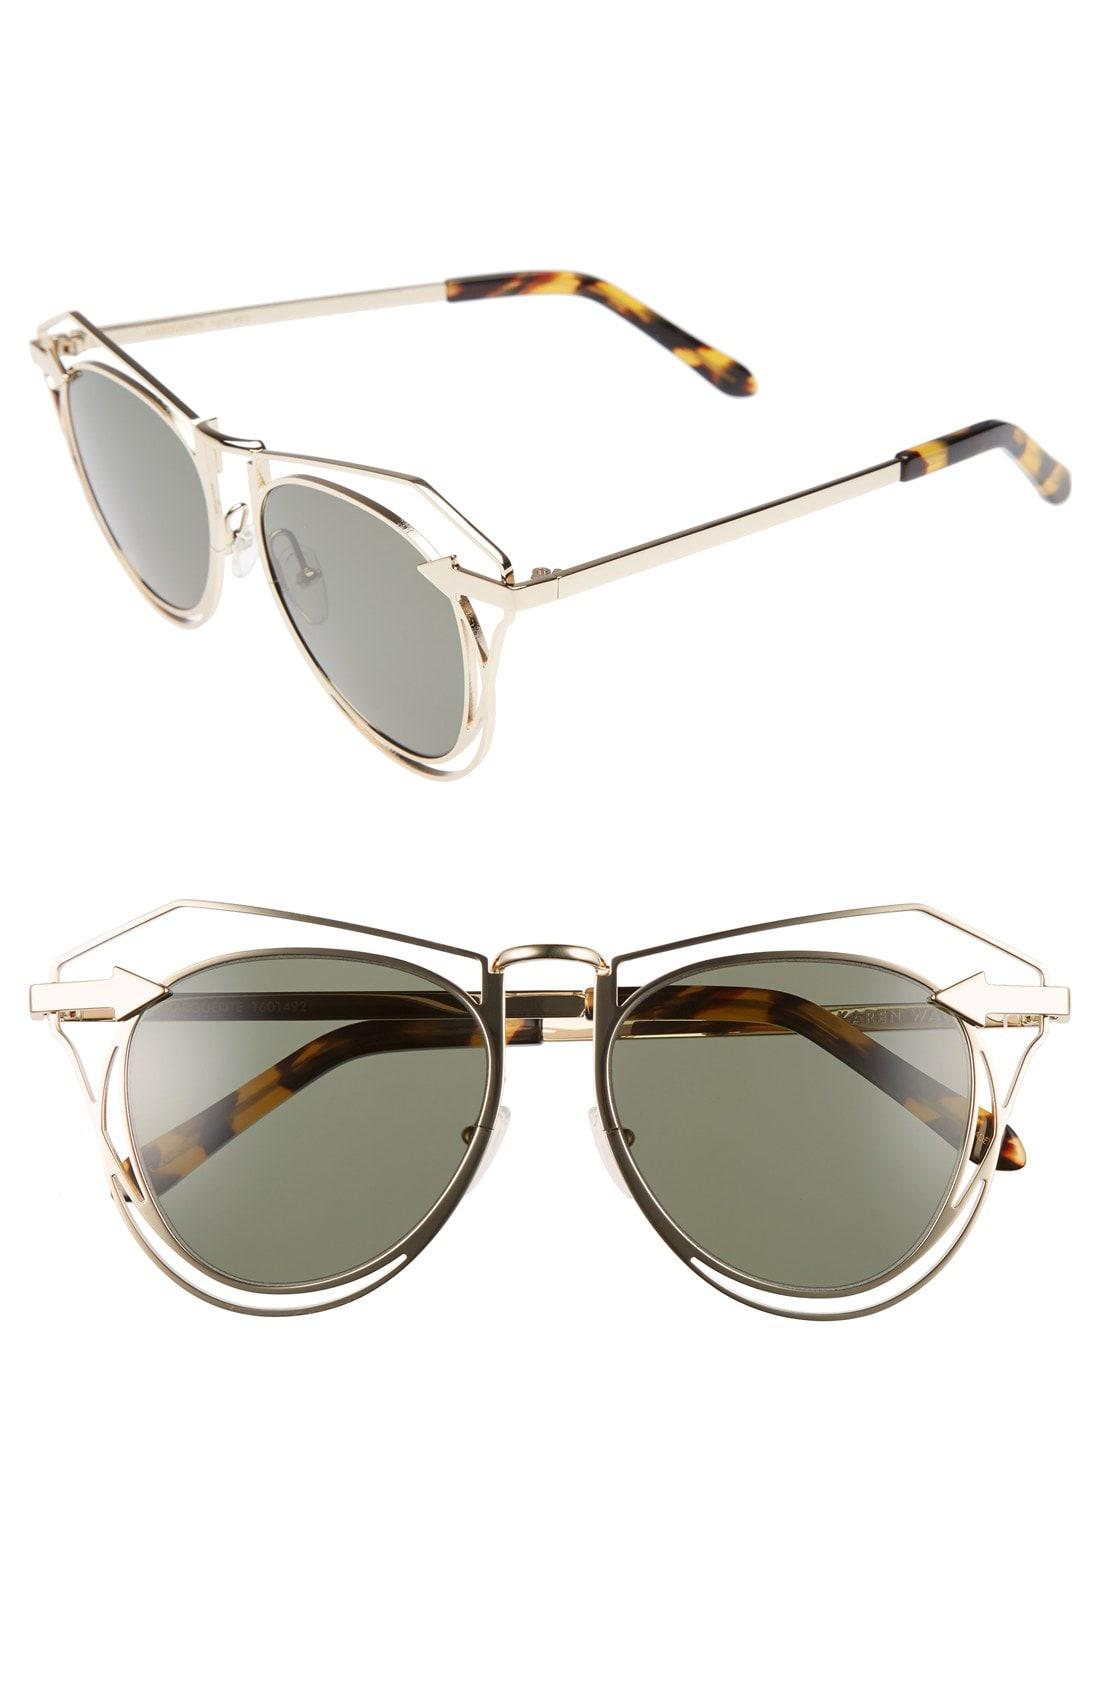 2ff7cc2d34b Lyst - Karen Walker  marguerite  52mm Sunglasses in Metallic